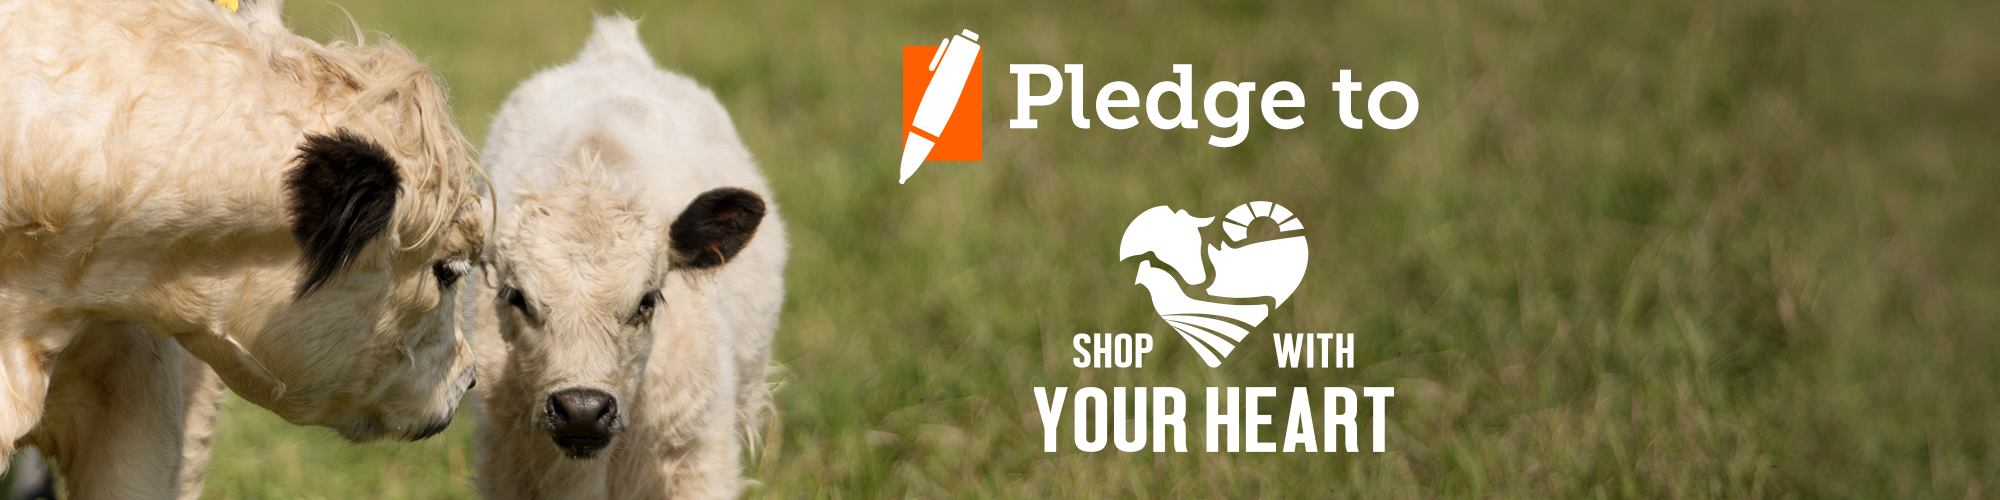 ASPCA-pledge